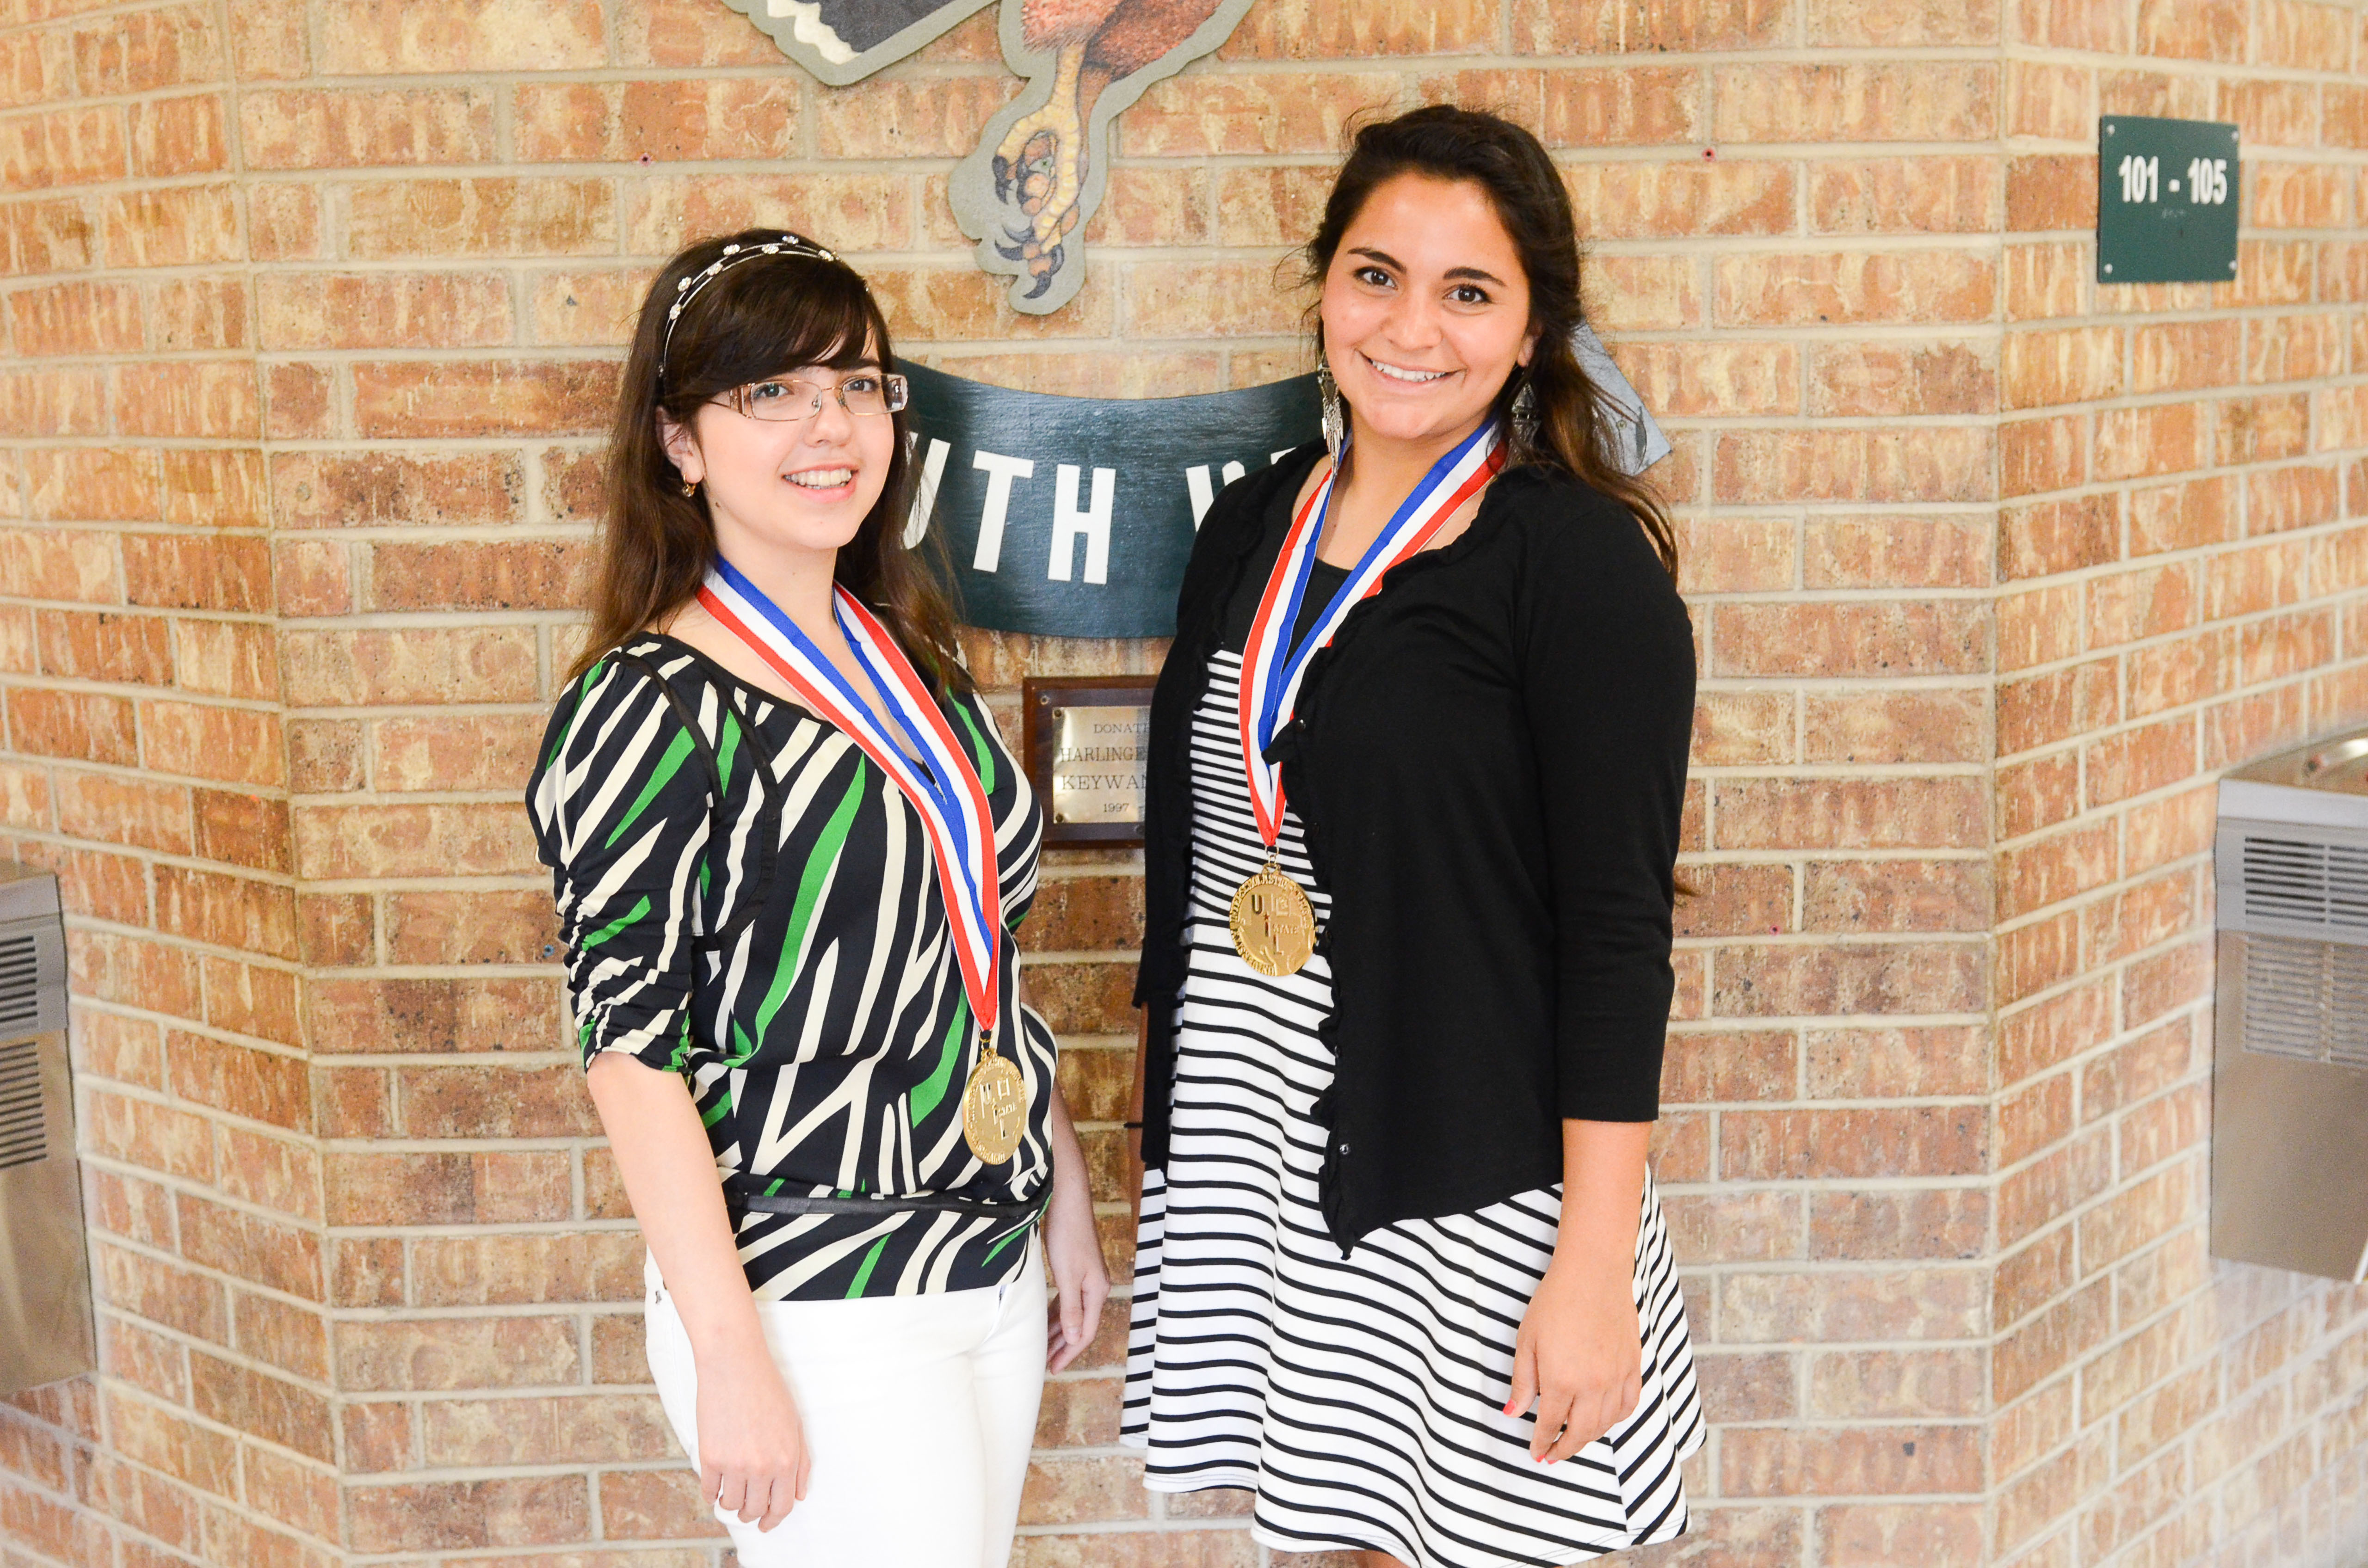 Quintanilla, Gonzalez named UIL Academic State Champions